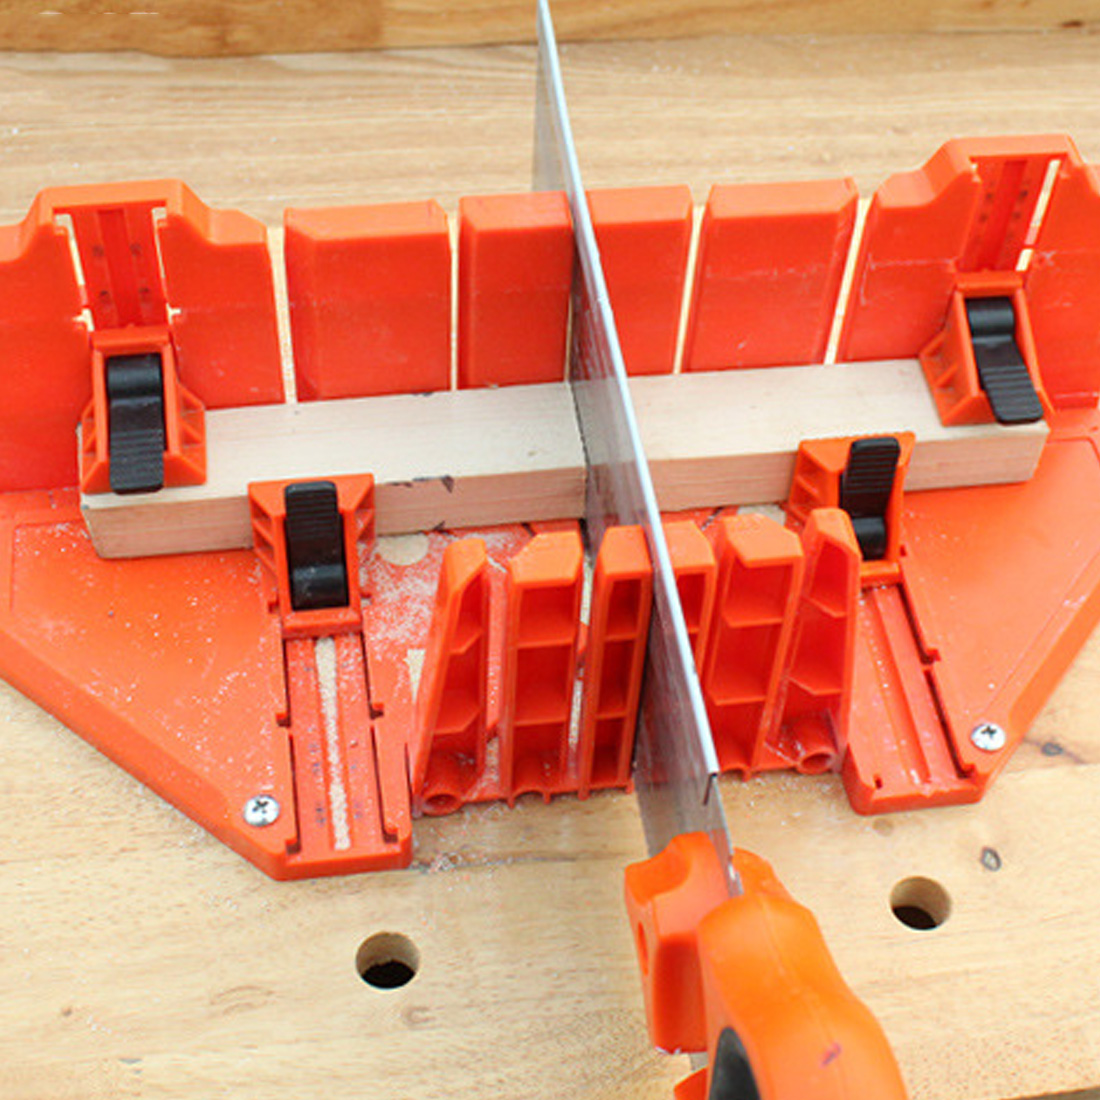 Clamped-Box Saw-Cabinets Hand-Tools Woodworking Multifunction 12-14inch Miter DIY Home